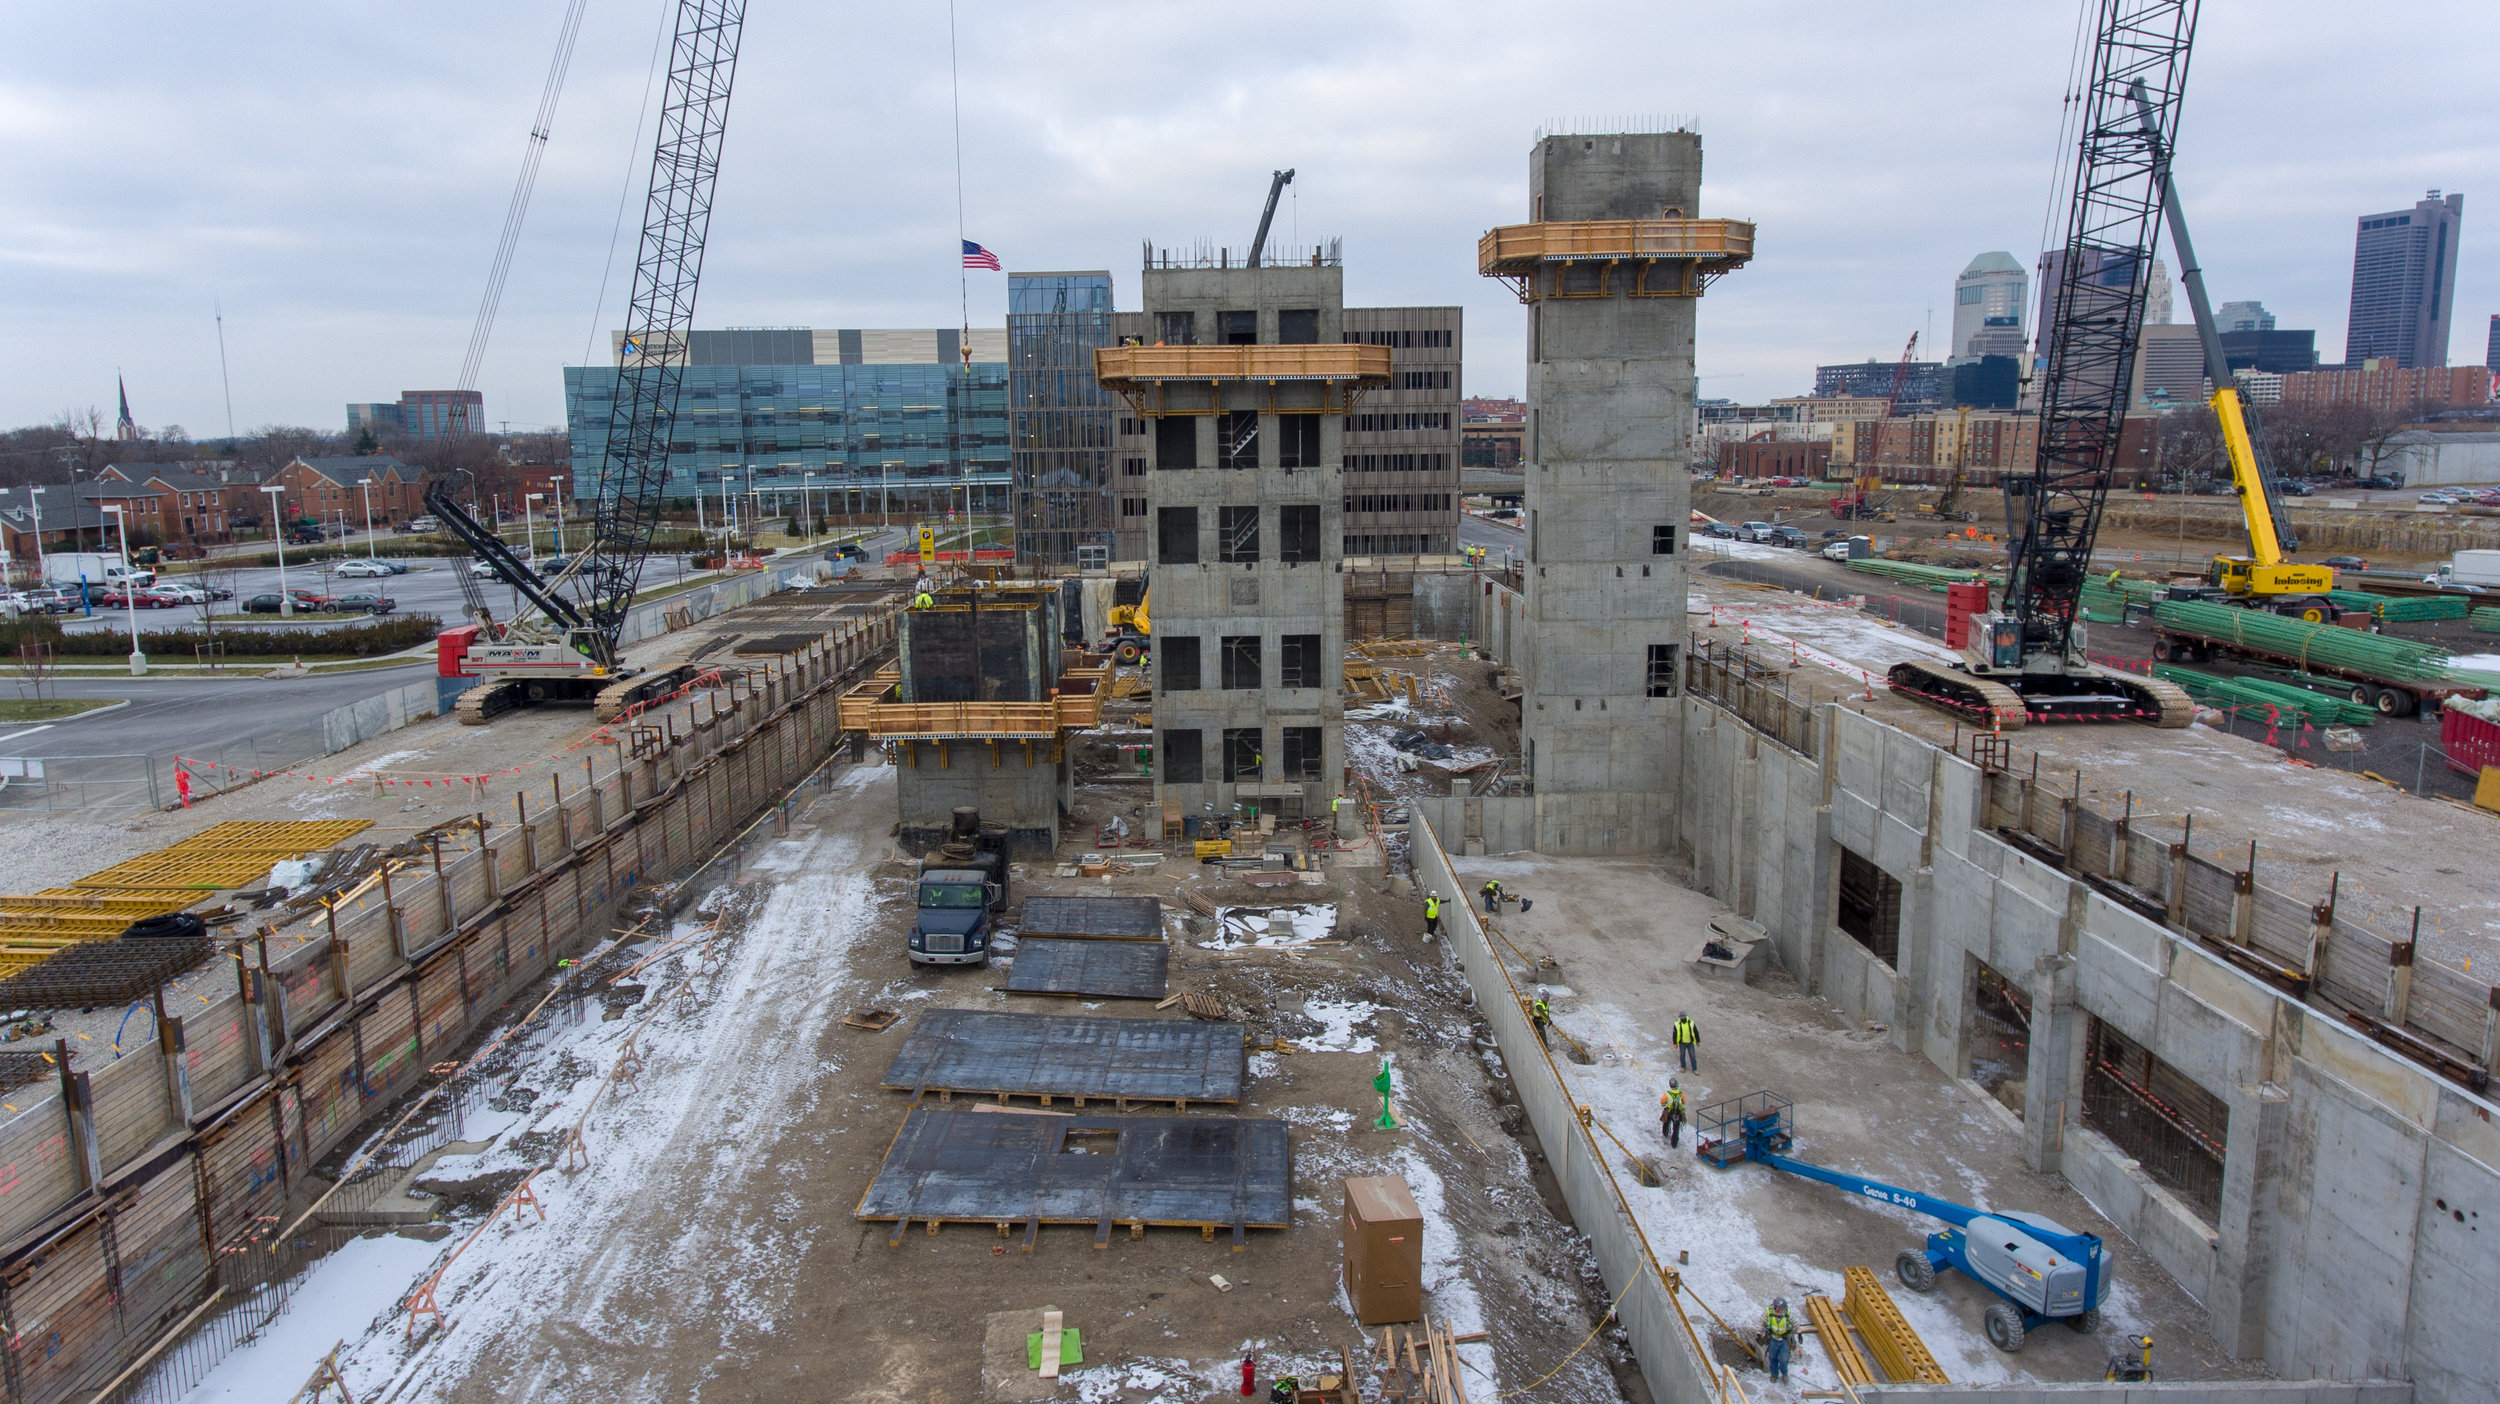 construction site with two large cranes